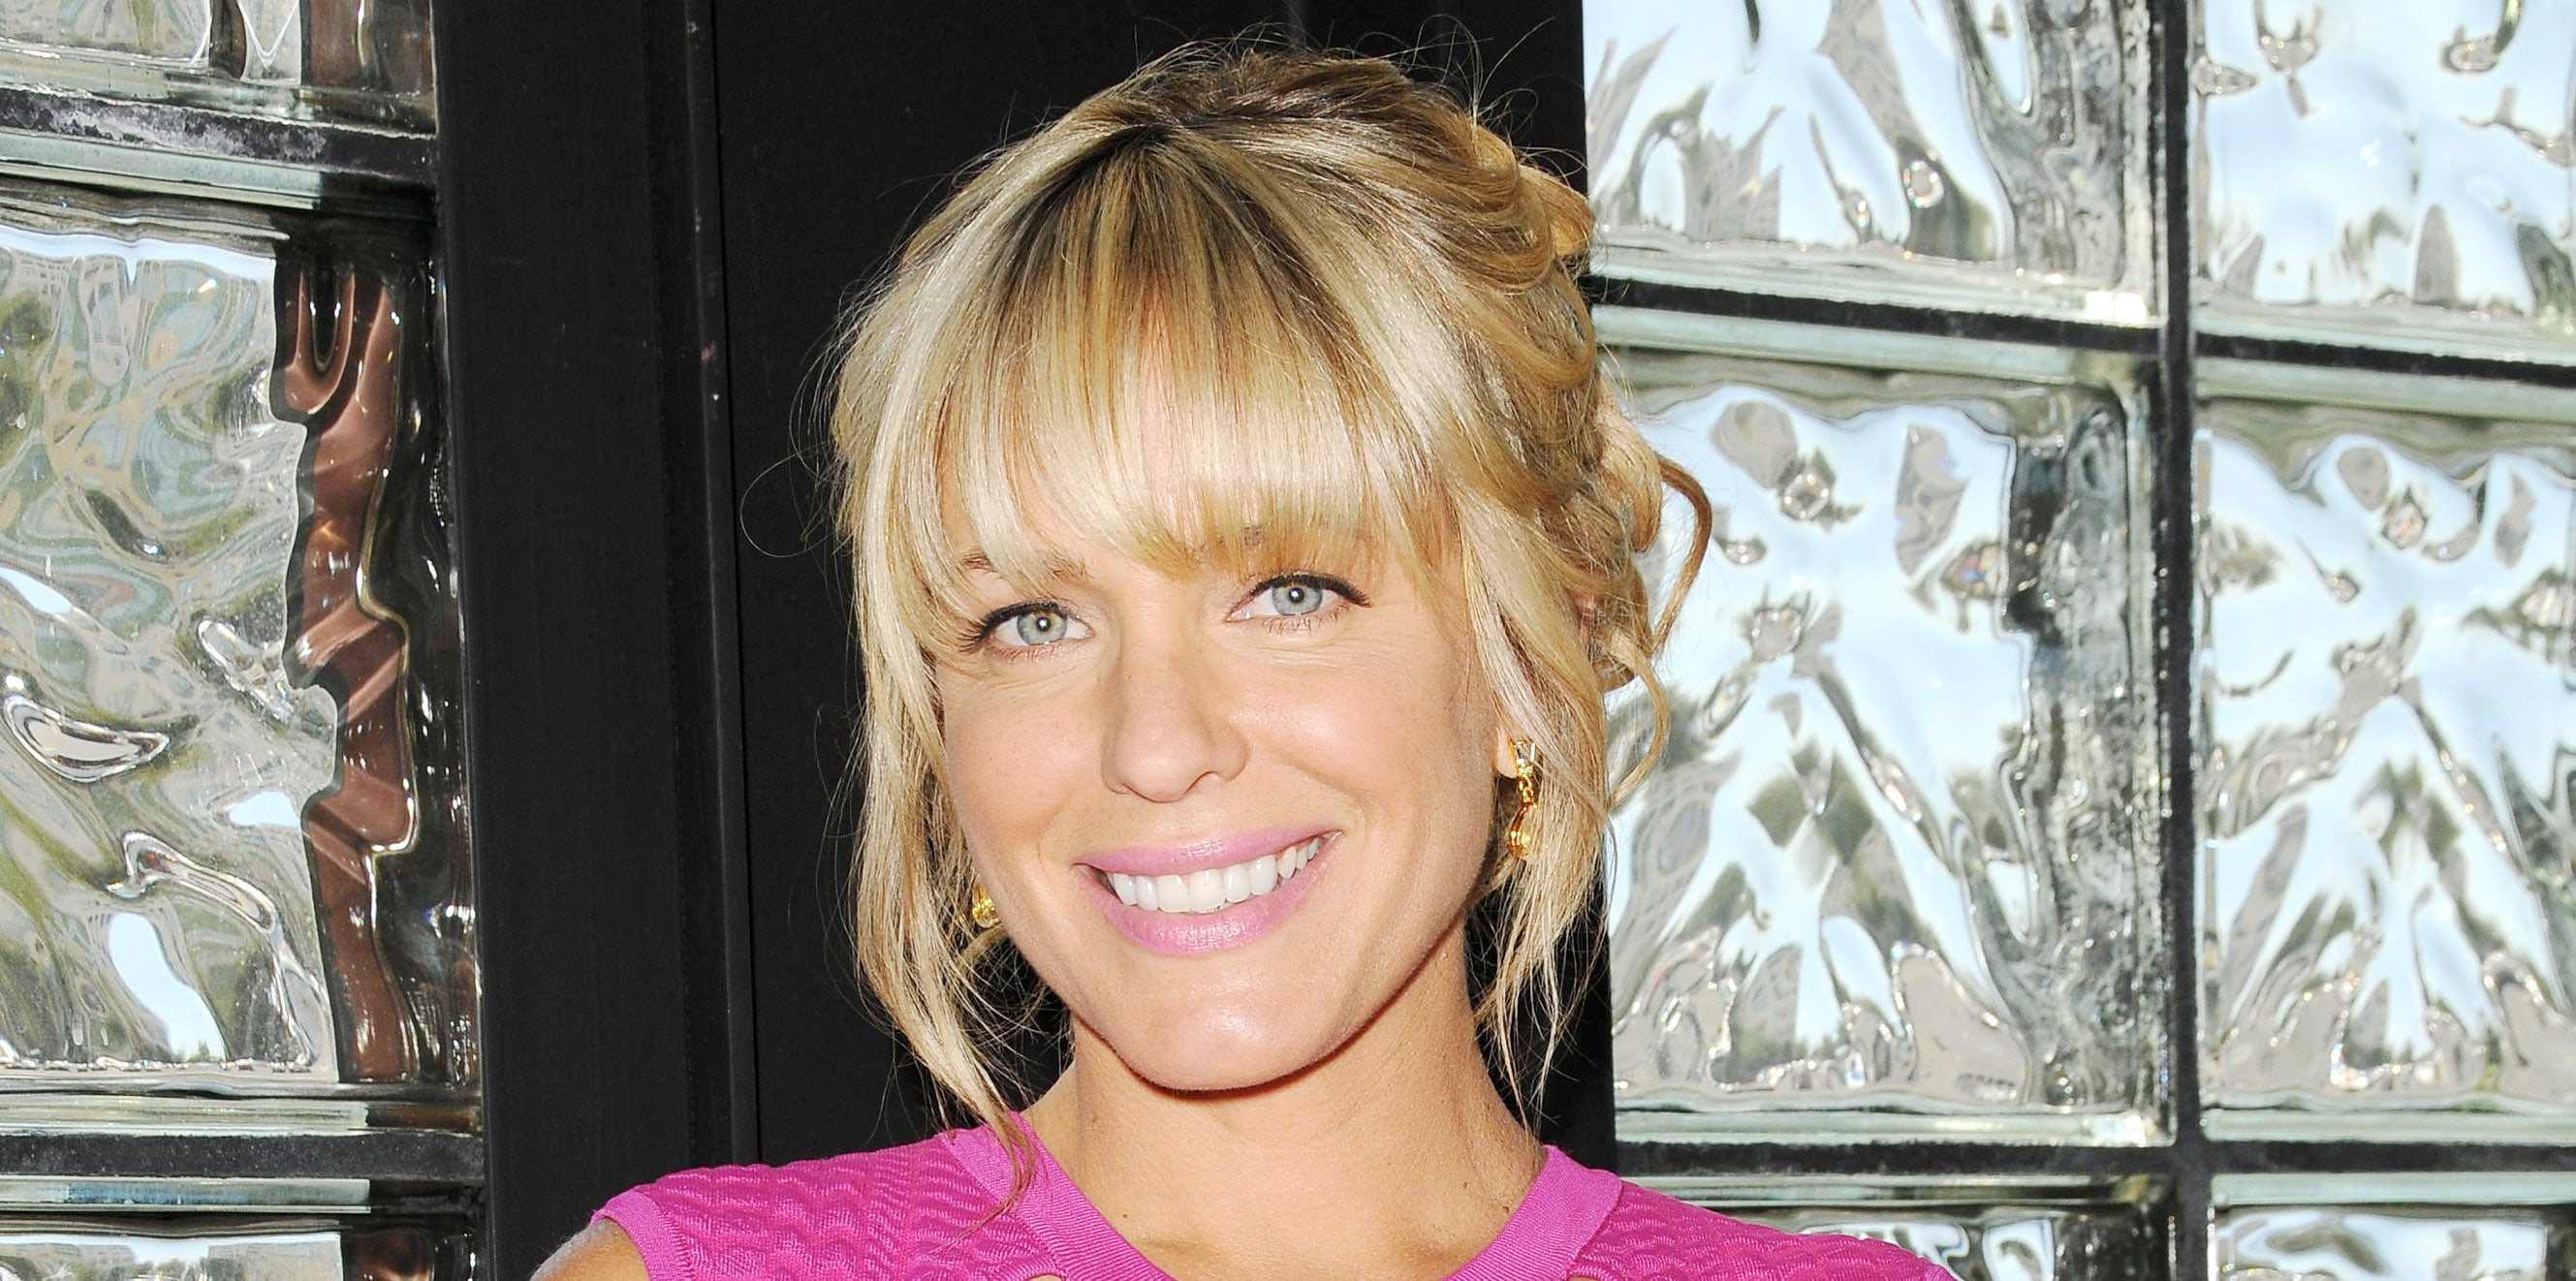 Arianne Zucker born June 3, 1974 (age 44) Arianne Zucker born June 3, 1974 (age 44) new images